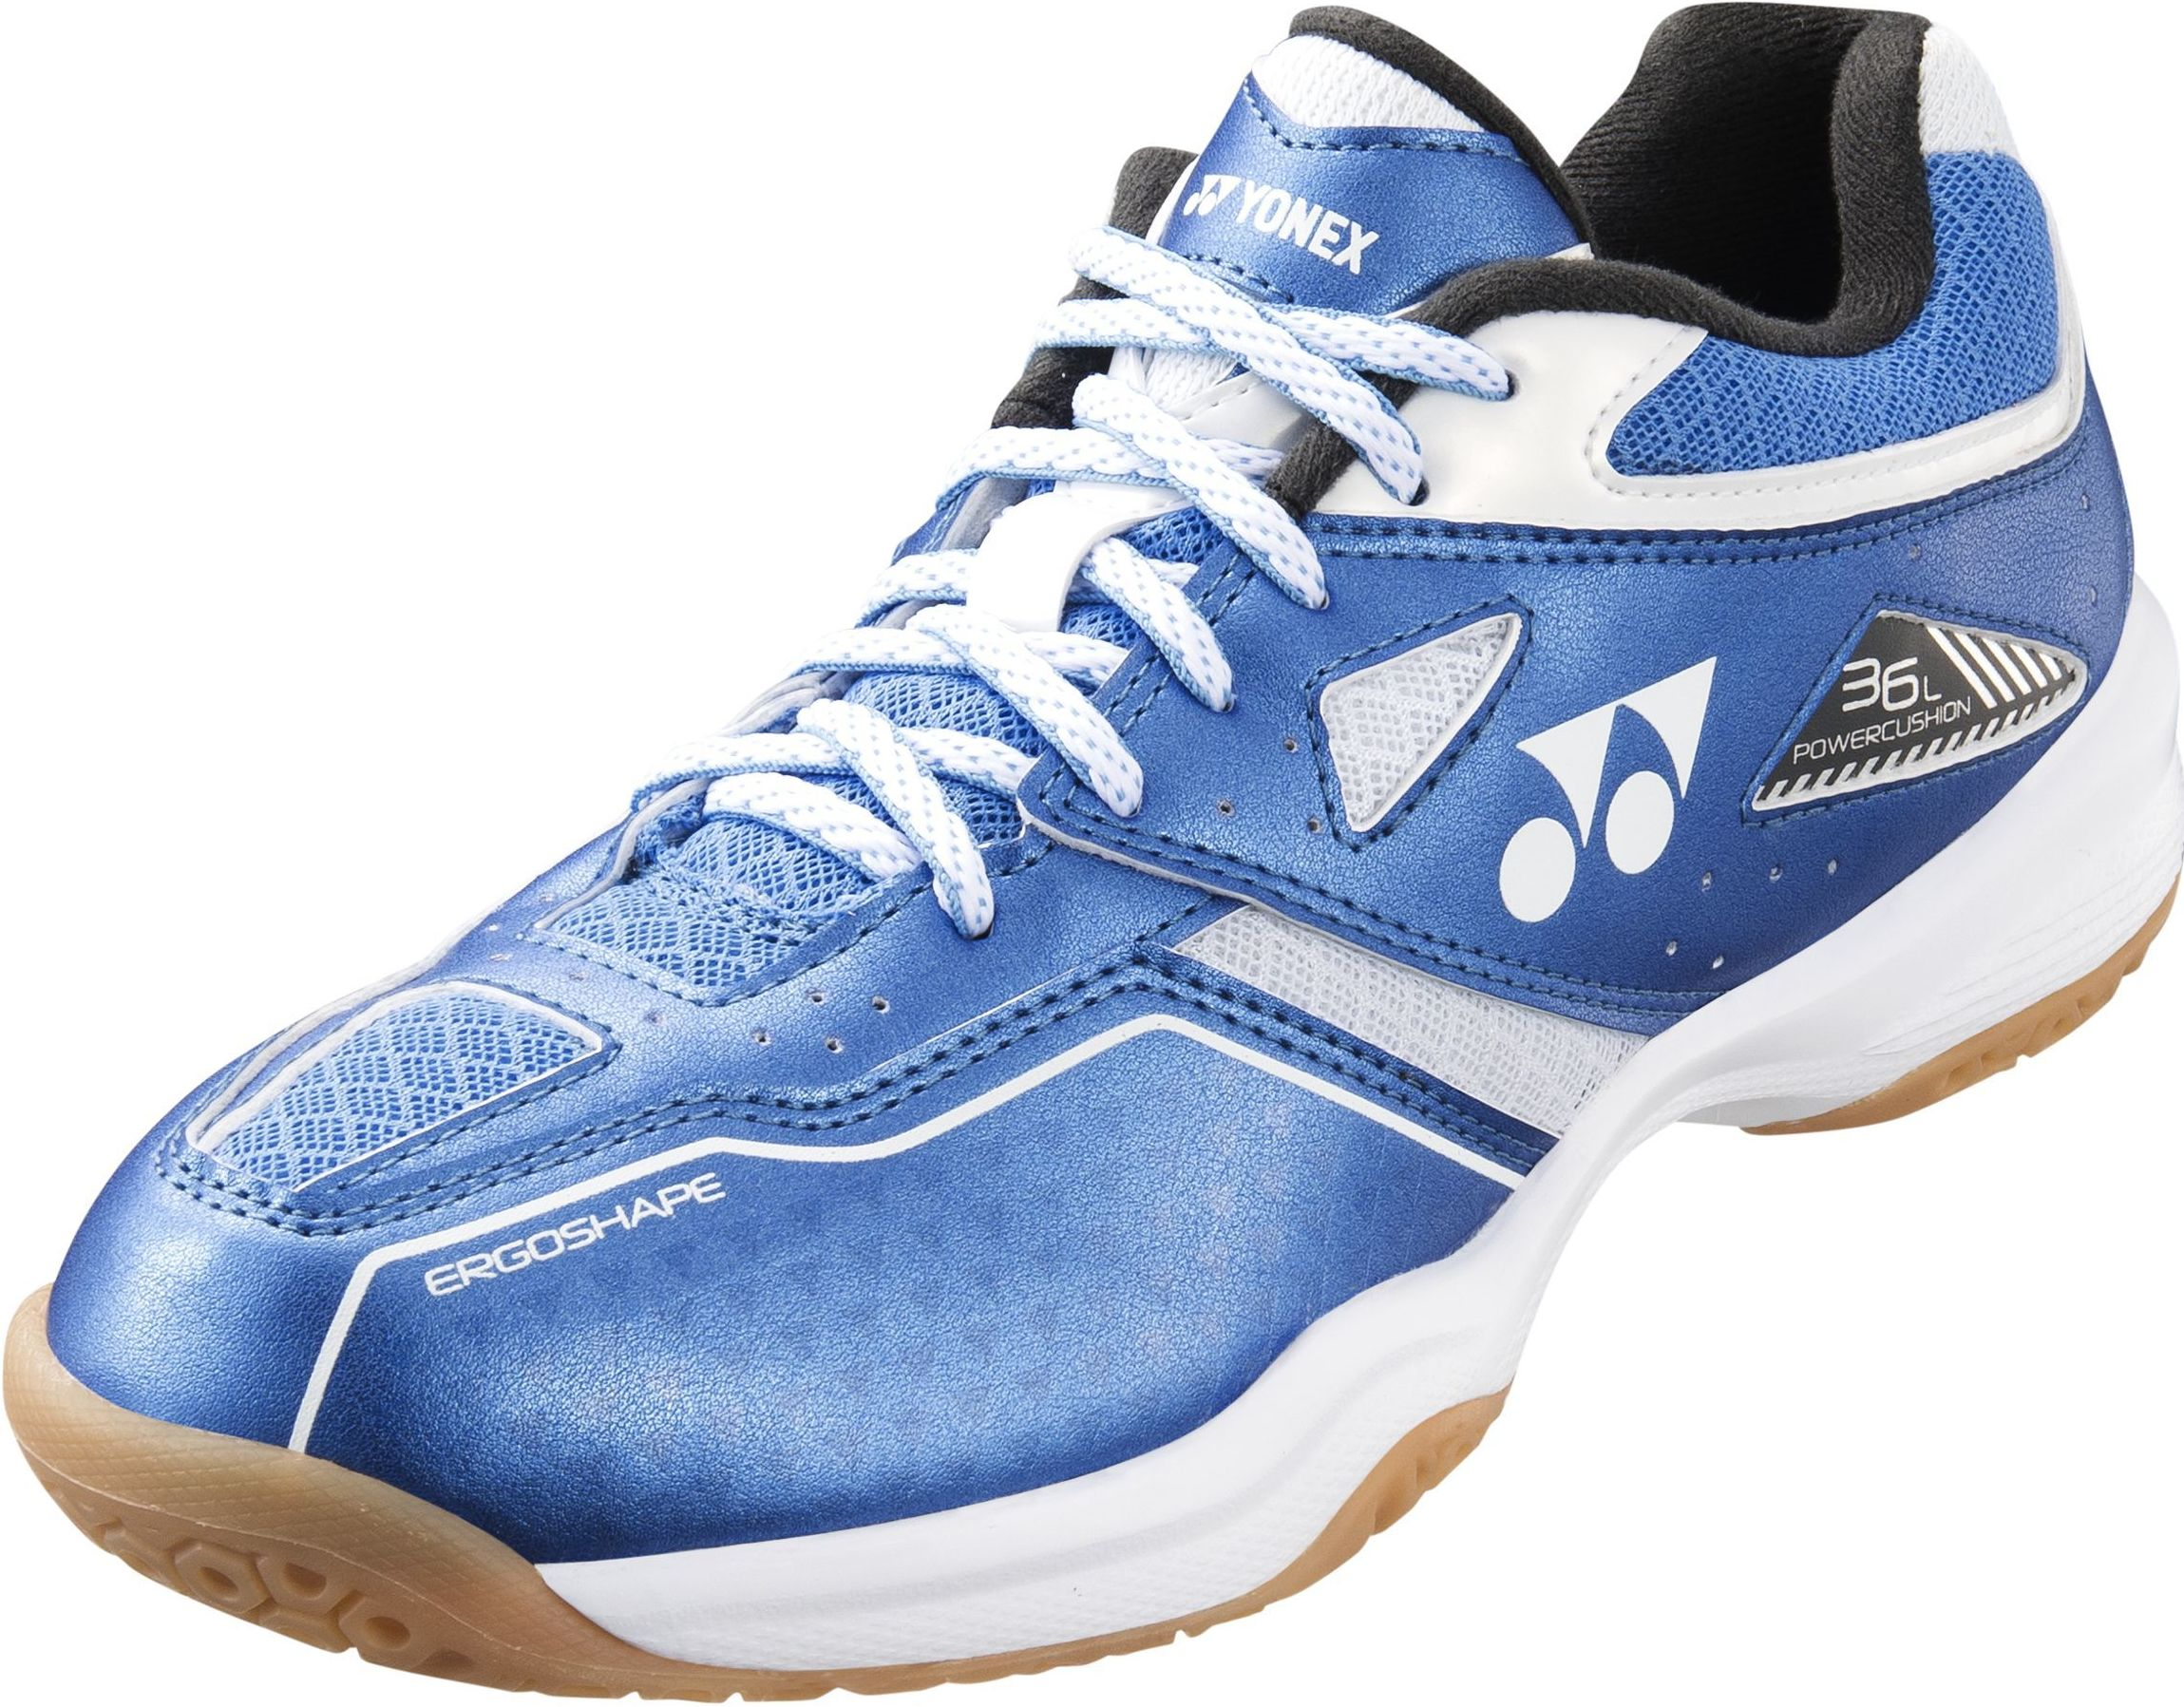 Yonex Power Cushion 36 Lady badmintonsko